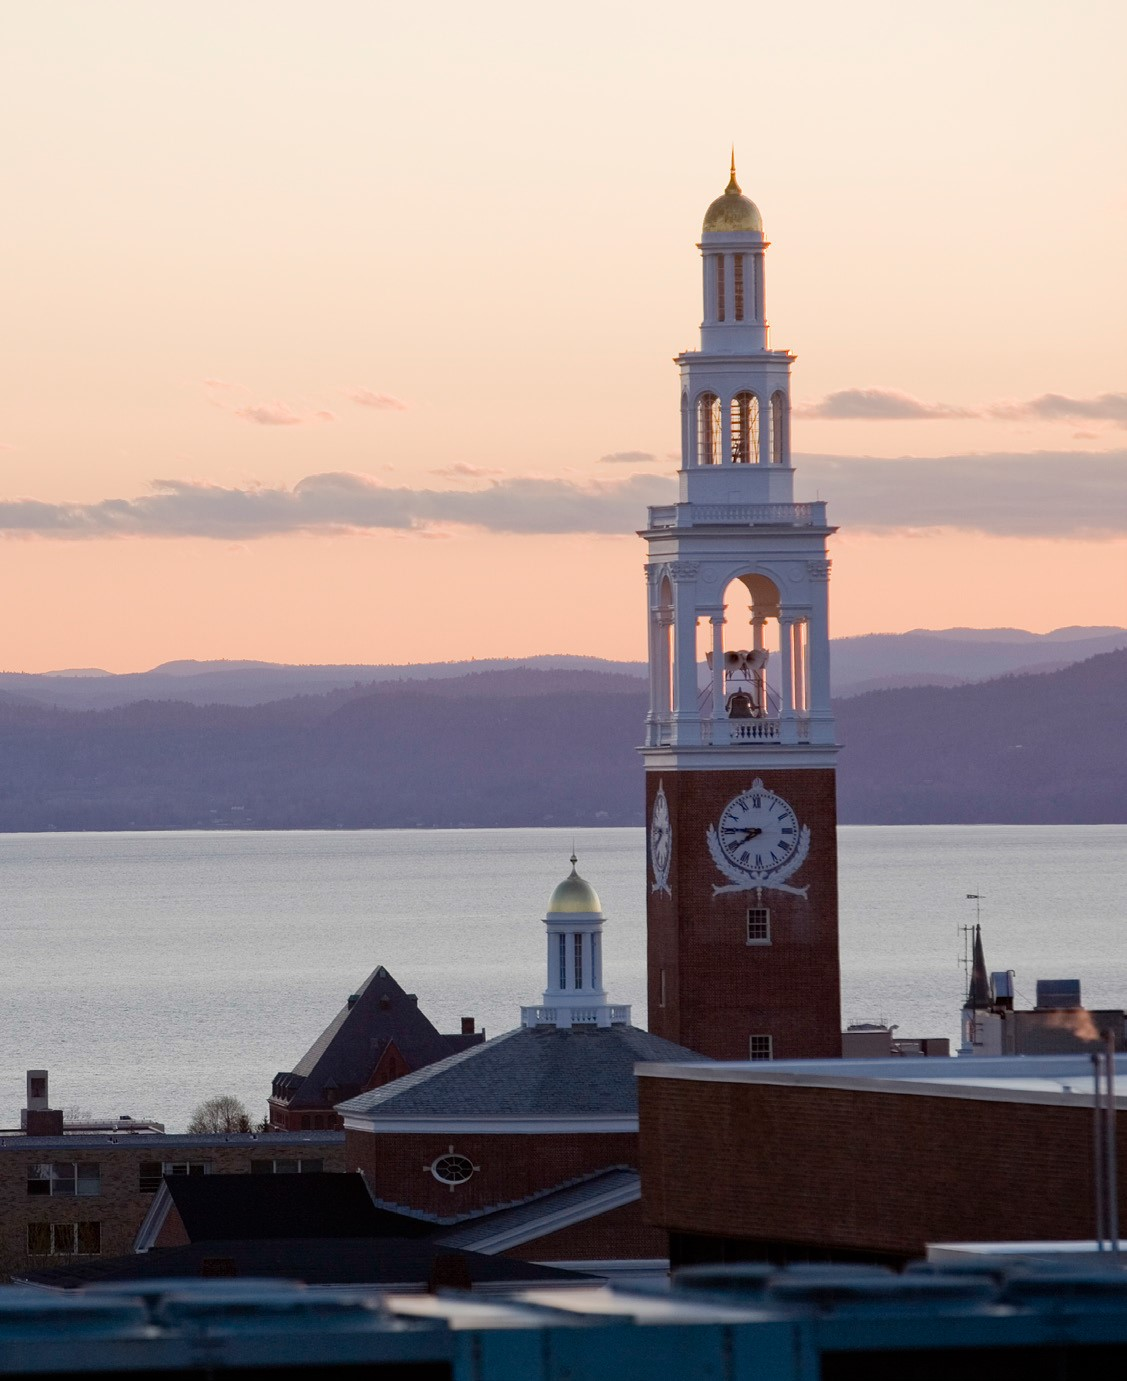 UVM campus tower and view of lake